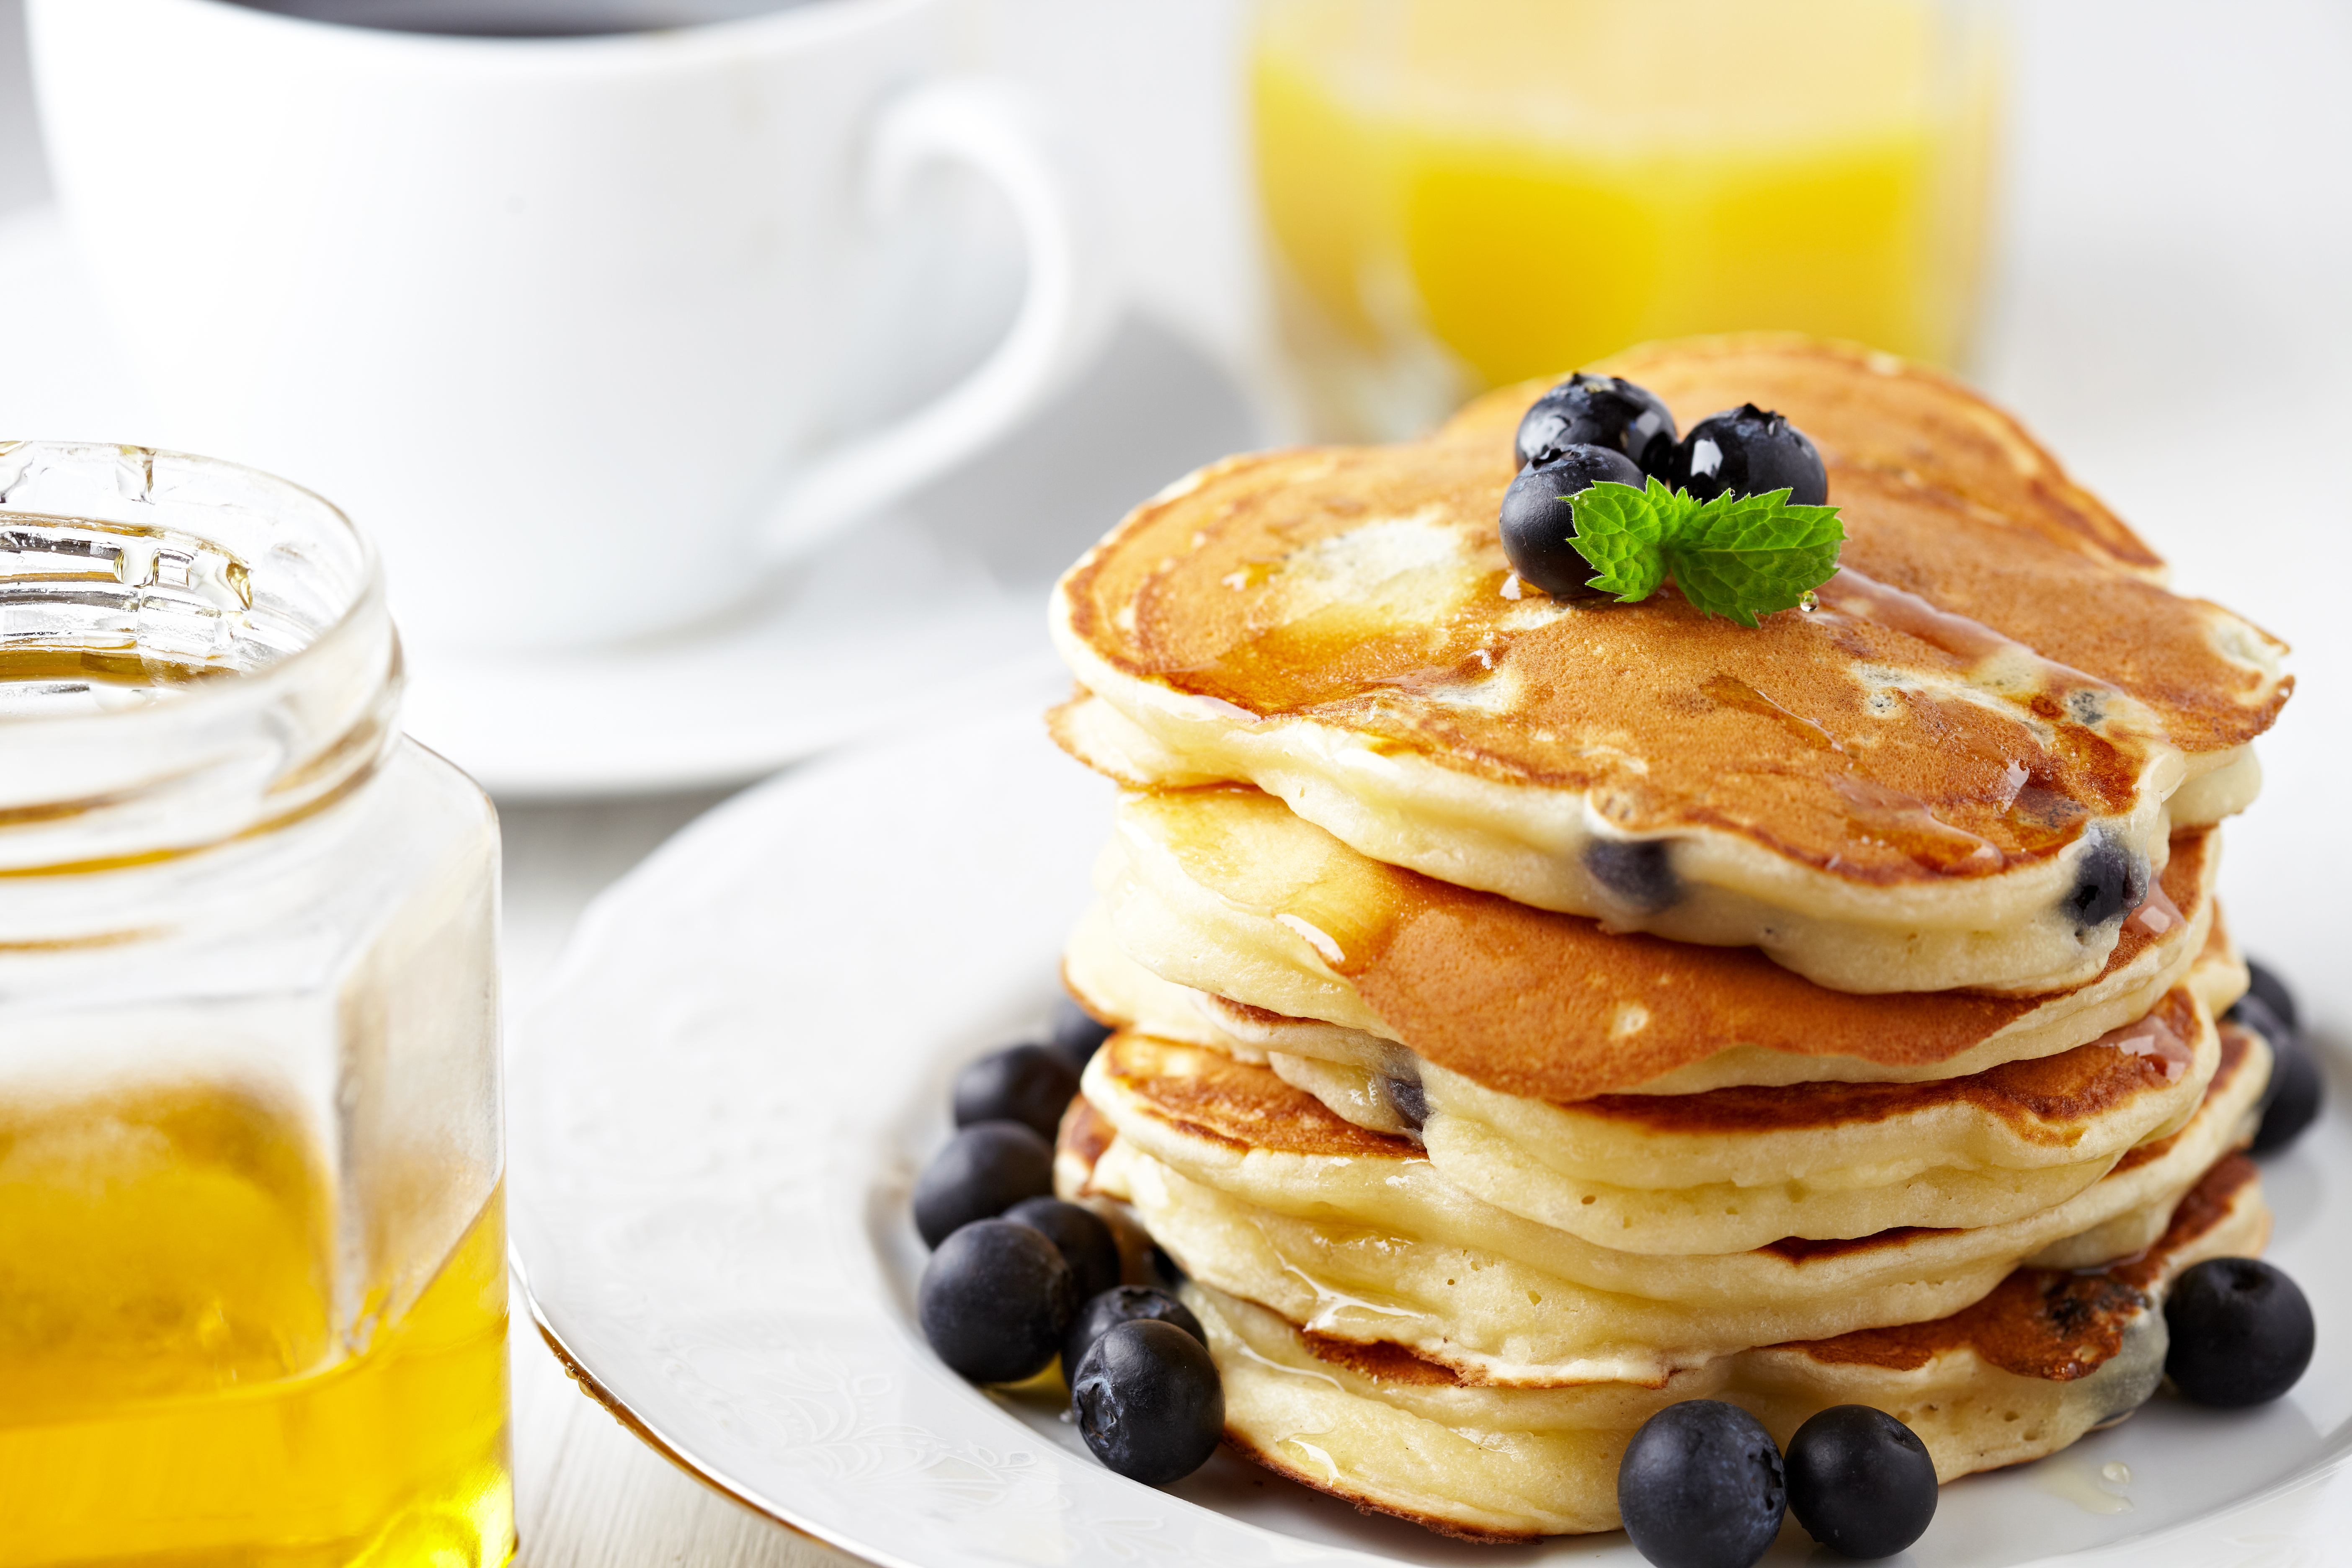 Coffee, orange juice, and a stack of blueberry pancakes